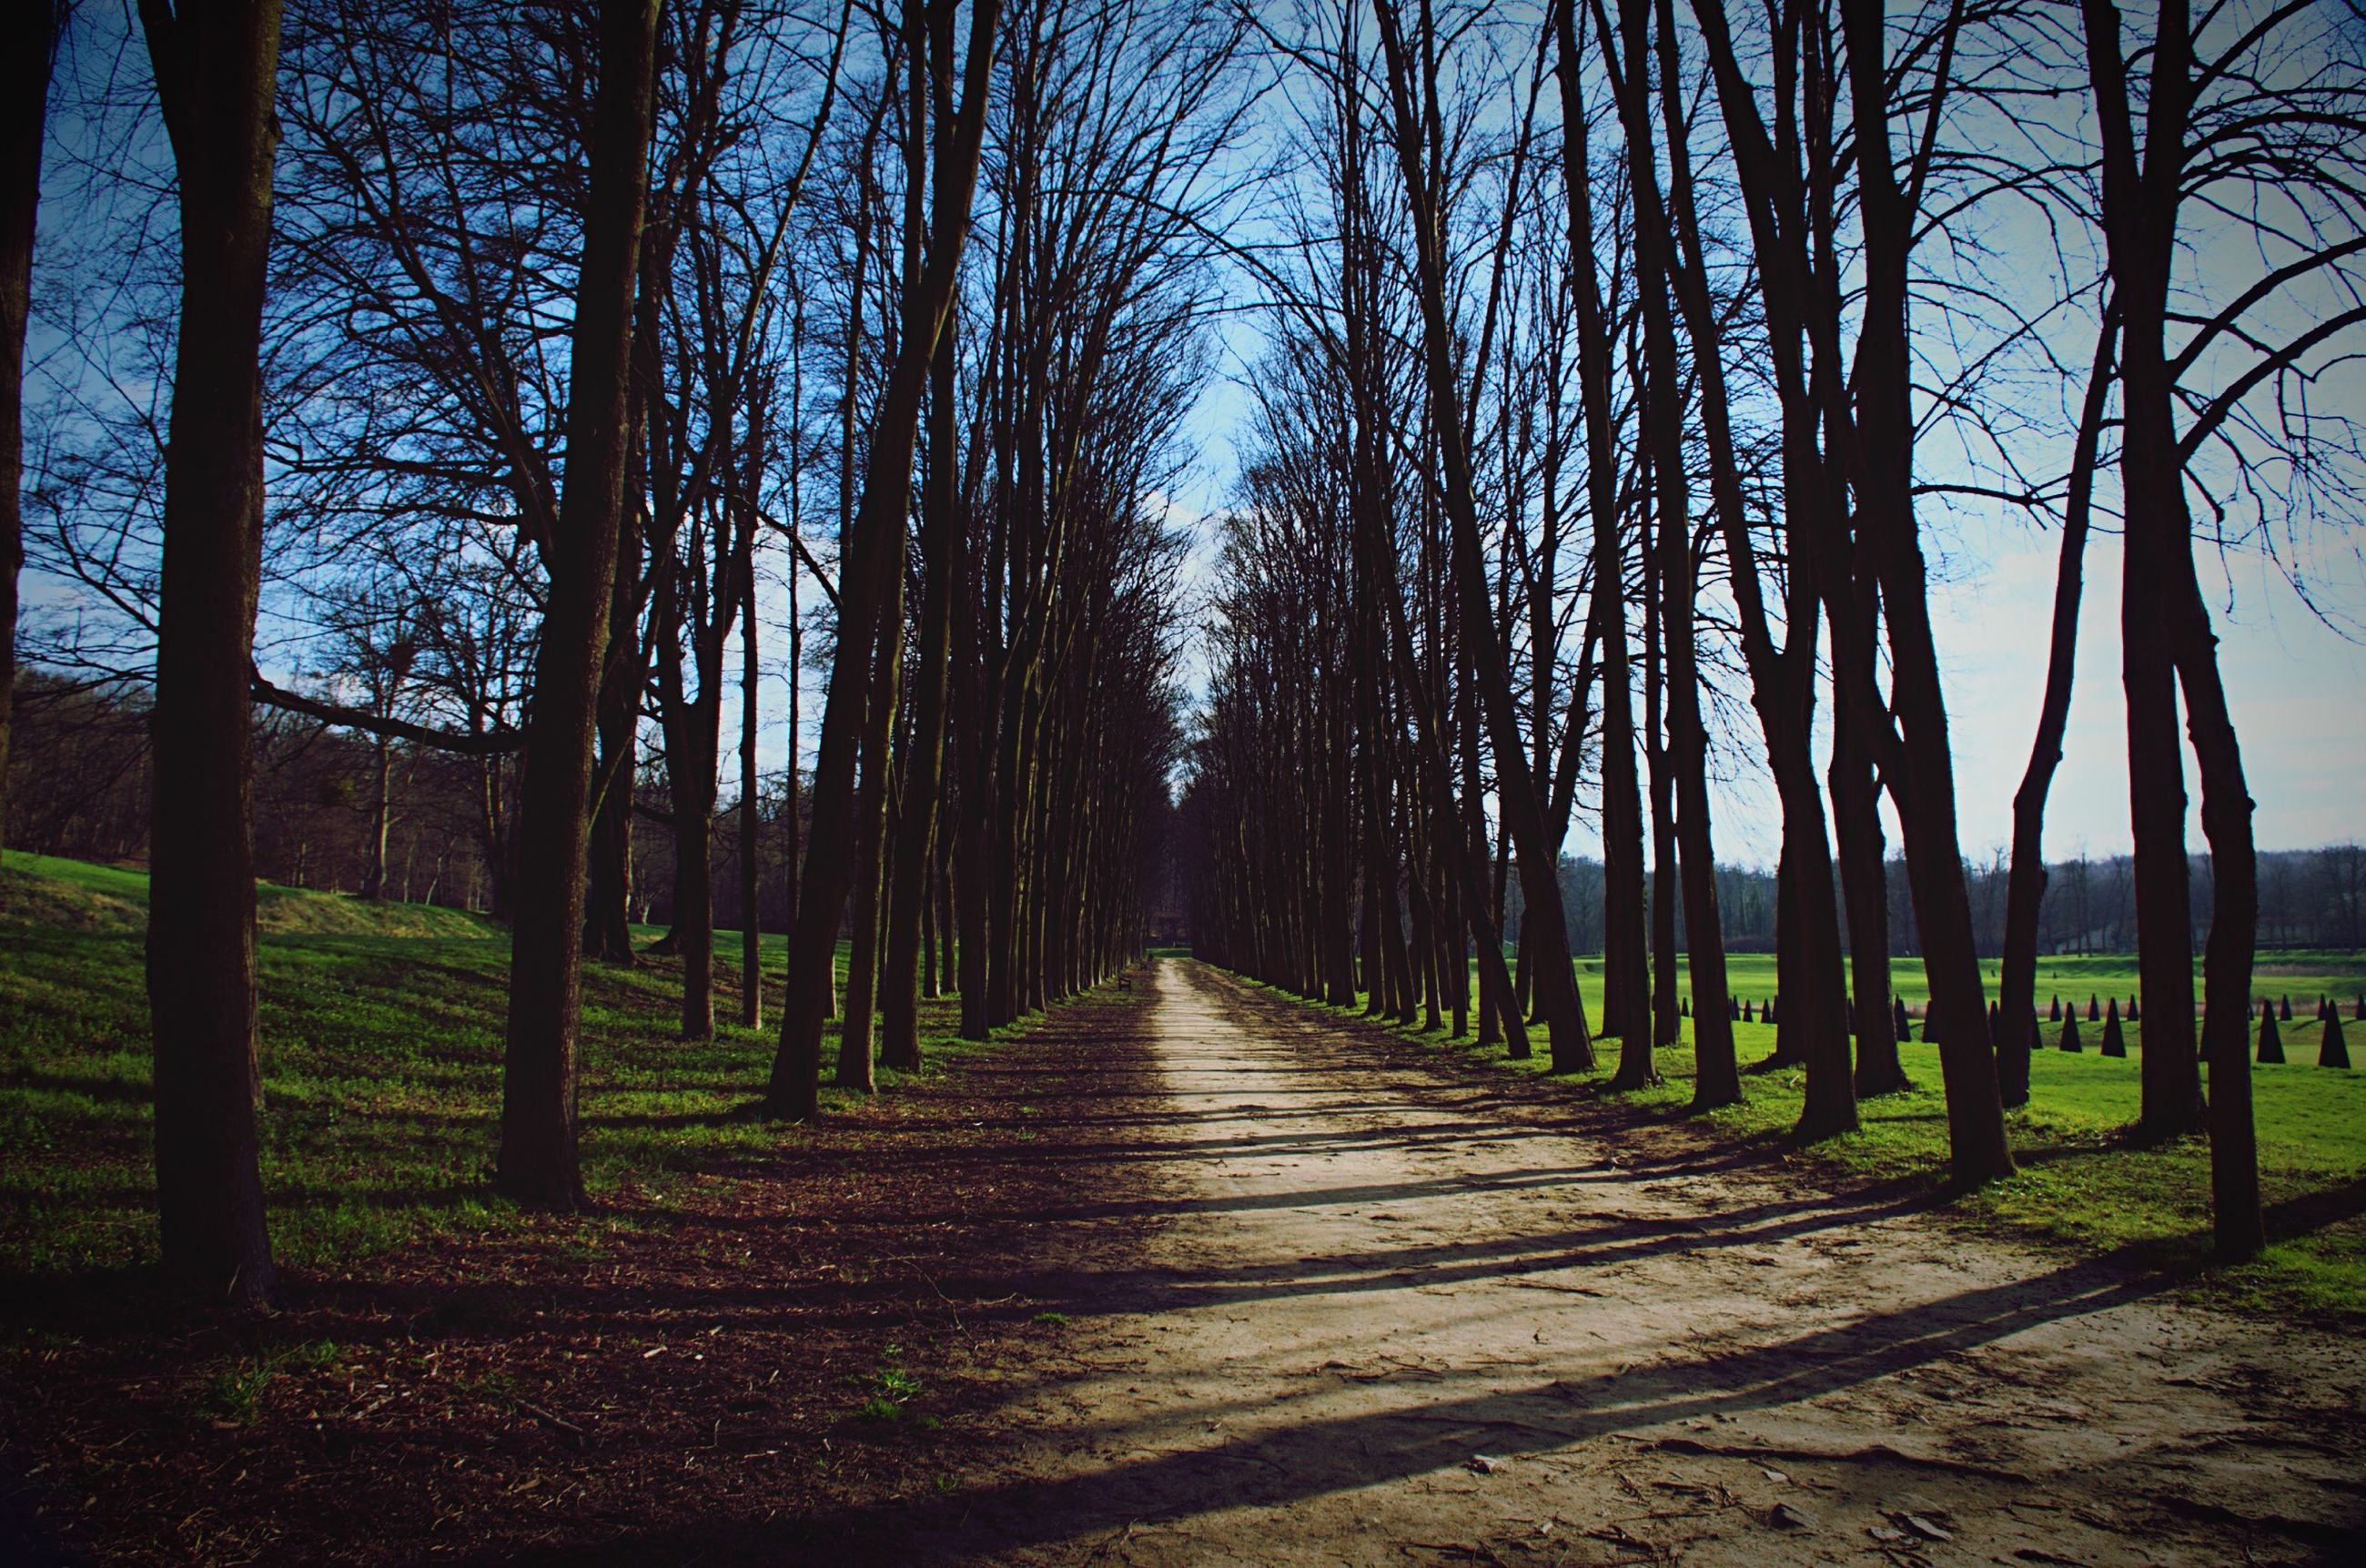 the way forward, tree, diminishing perspective, tree trunk, treelined, vanishing point, tranquility, bare tree, tranquil scene, nature, footpath, pathway, branch, scenics, beauty in nature, shadow, sunlight, growth, long, narrow